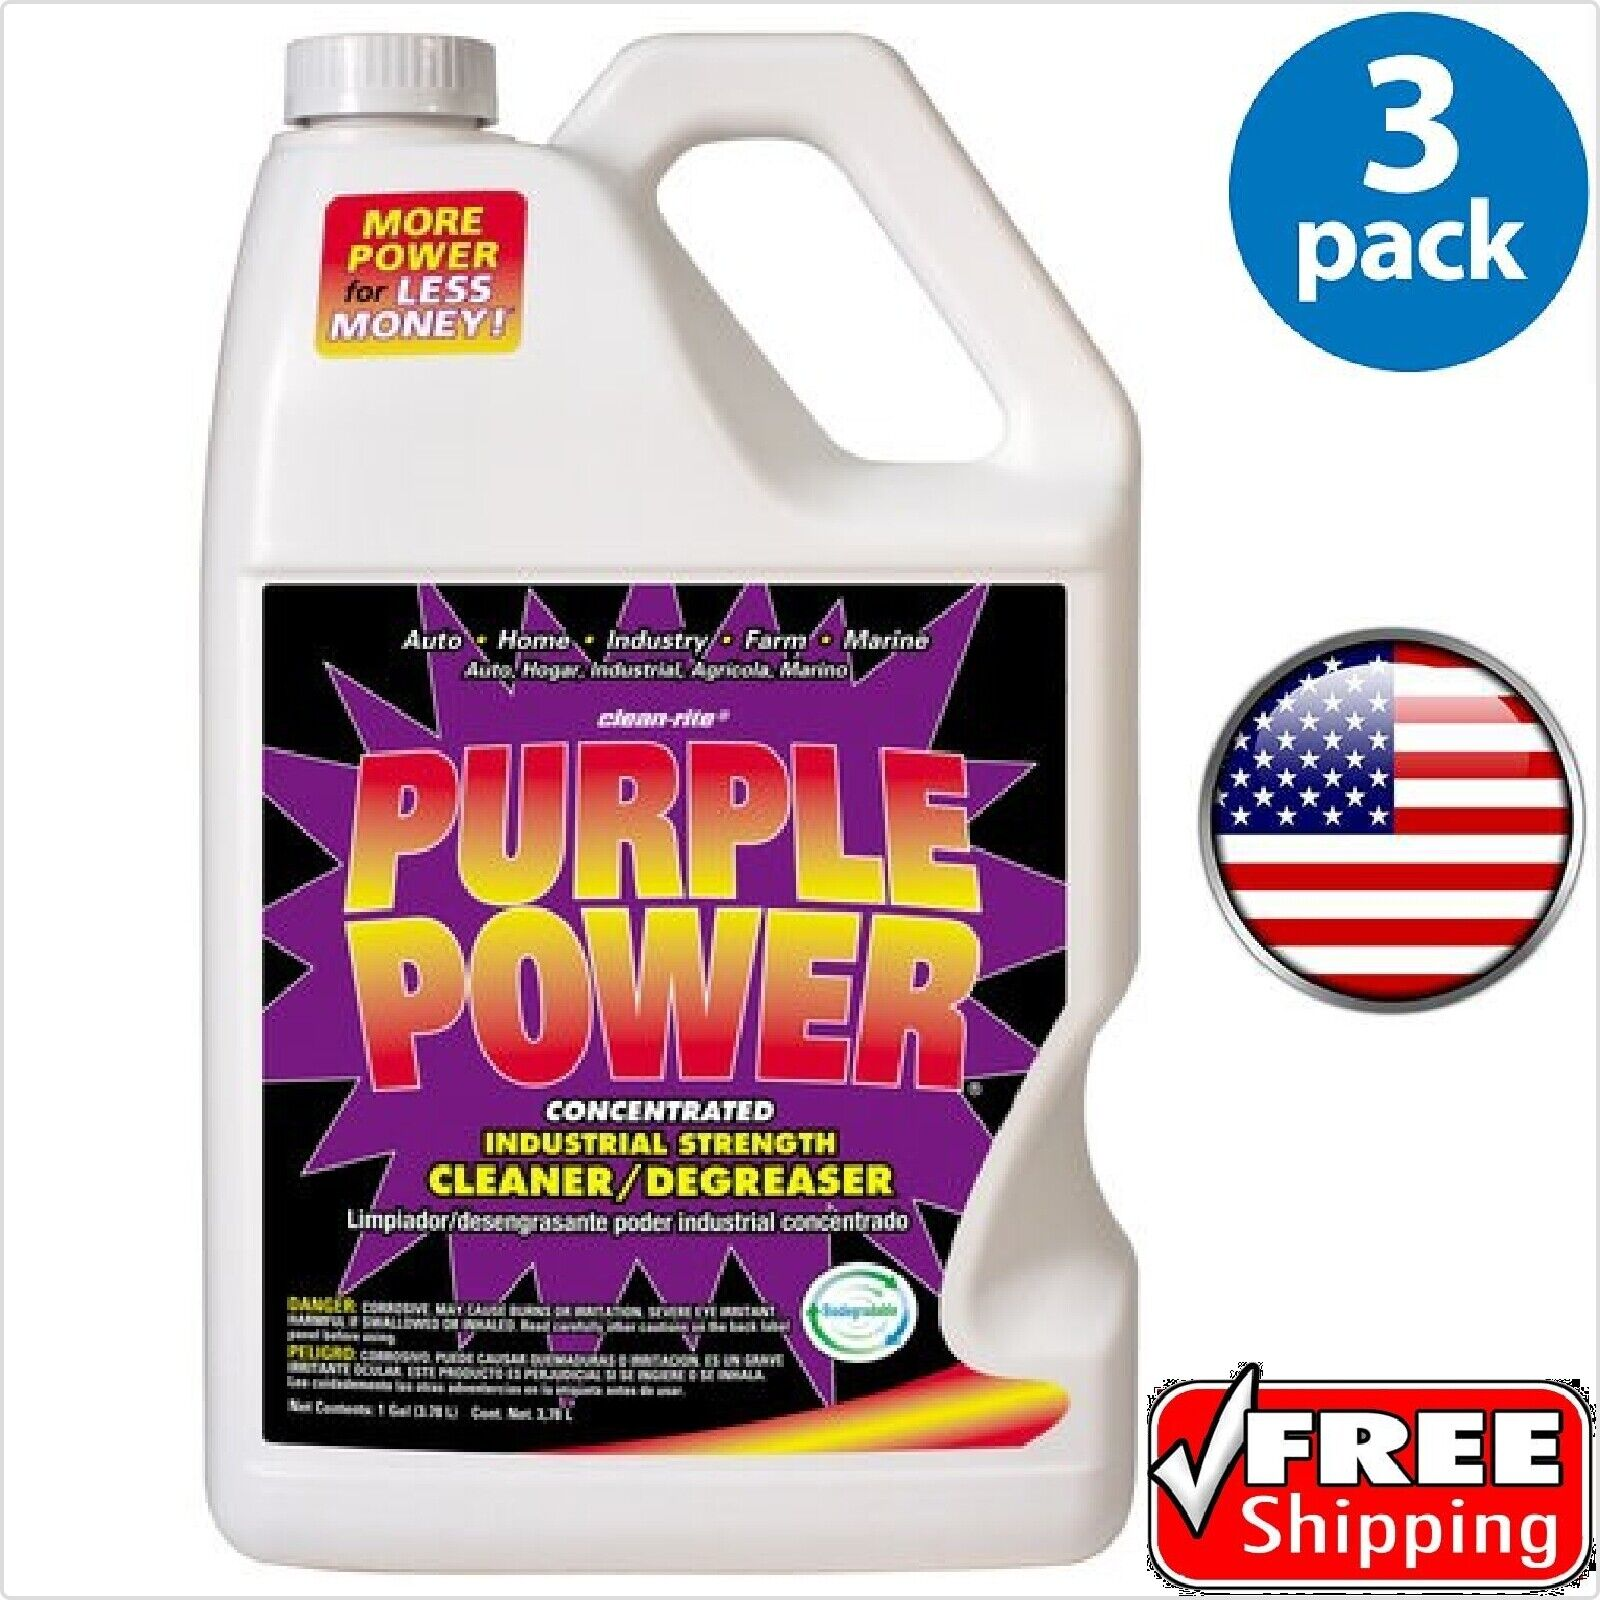 Purple Power ® Degreaser 1 Gallon - 3 PACK - Free 2-5 Day D